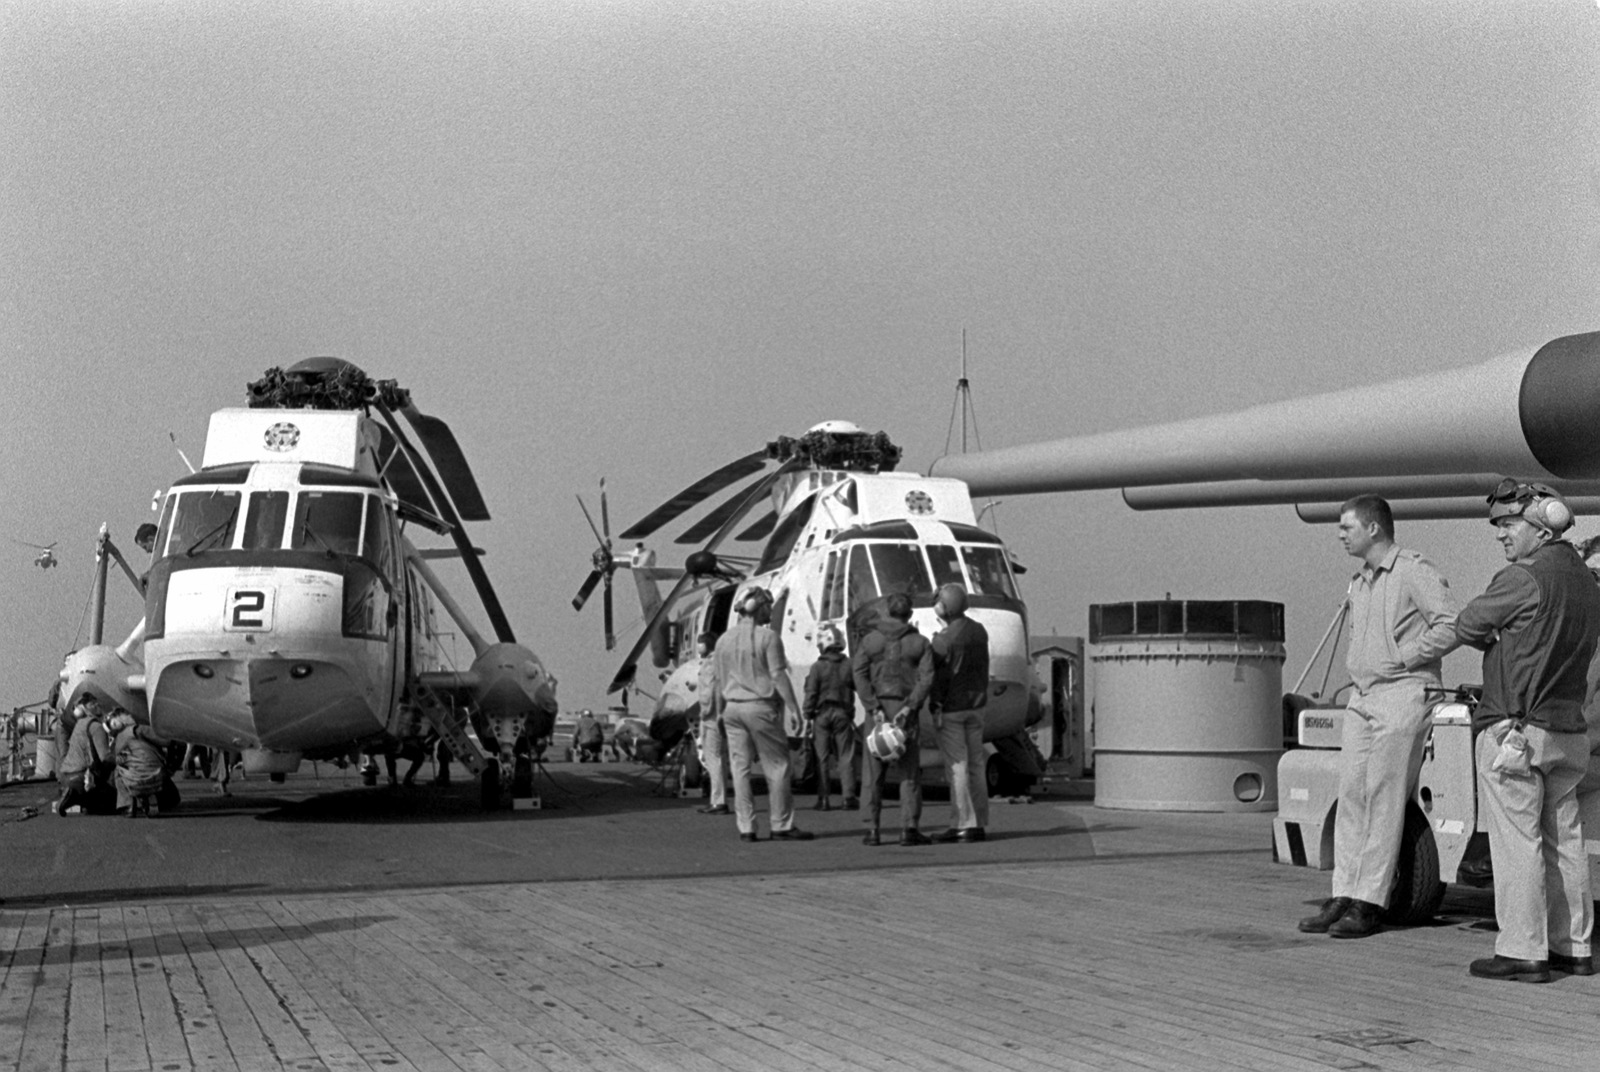 Two SH-3H Sea King helicopters from Helicopter Anti-Submarine